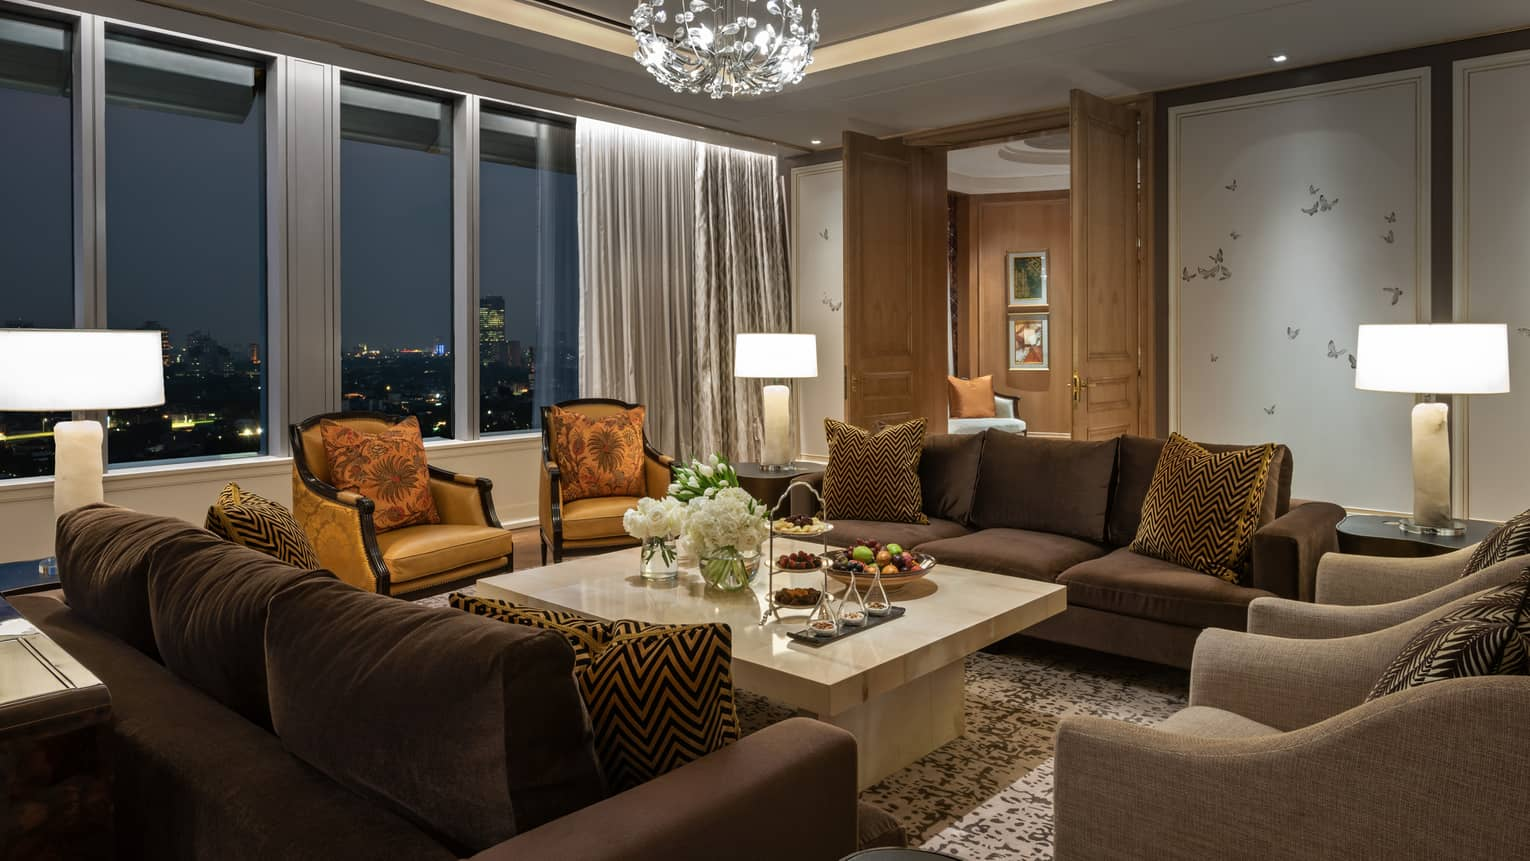 Ambassador suite living room with two couches, four armchairs, brown & gold accents, floor-to-ceiling windows